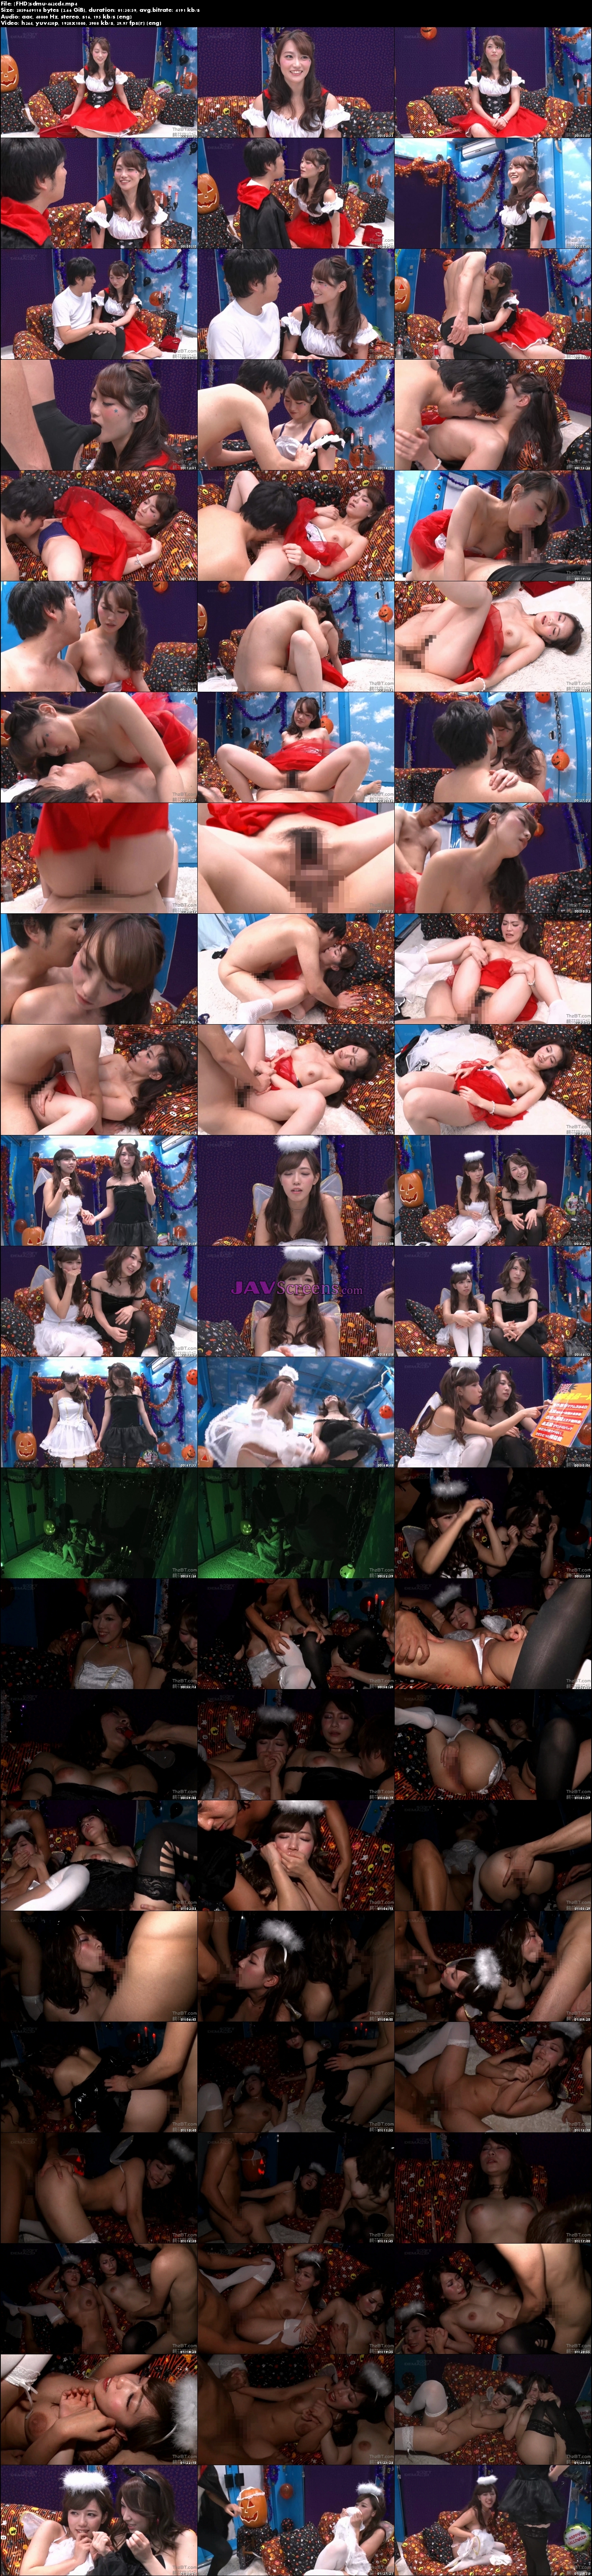 SDMU-462D.jpg - JAV Screenshot